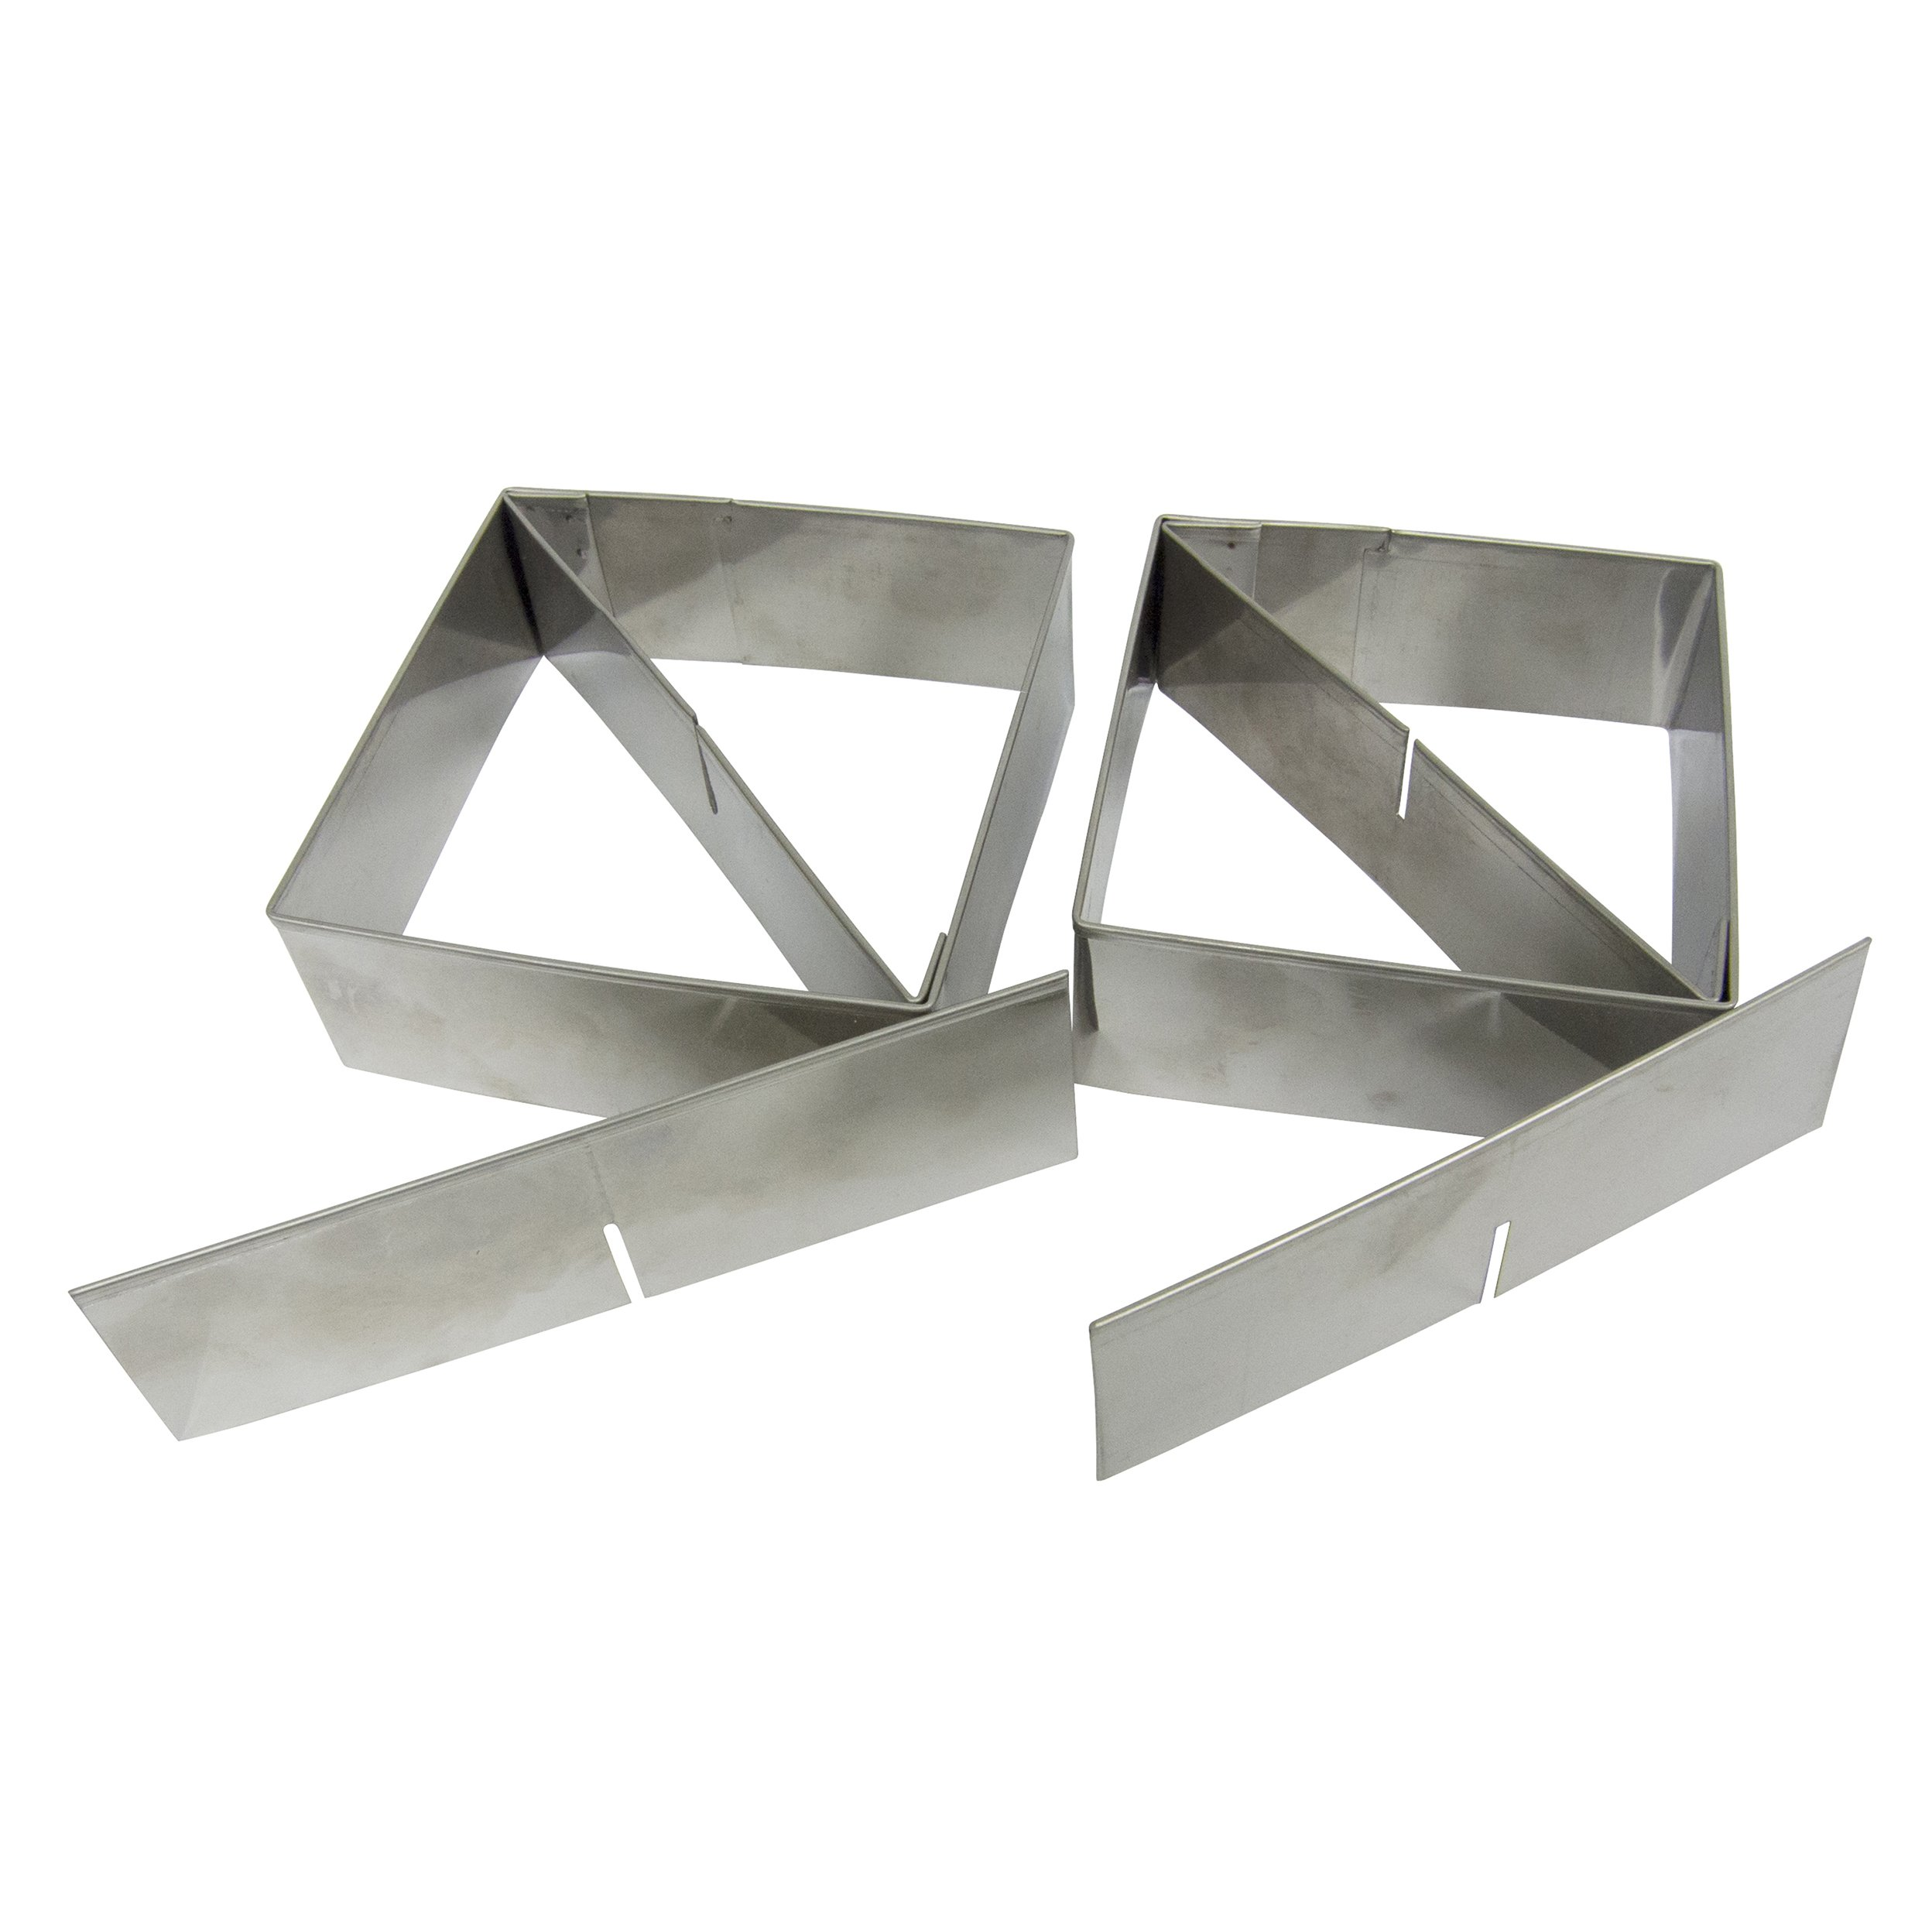 Multifunctional Pastry Cutter (2-Piece Set) - Heavy Gauge 18/10 Stainless Steel, (4-inch and 3.5-inch) with 2 Removable Blades, includes Recipes by Sweet Butter Baker (Image #2)